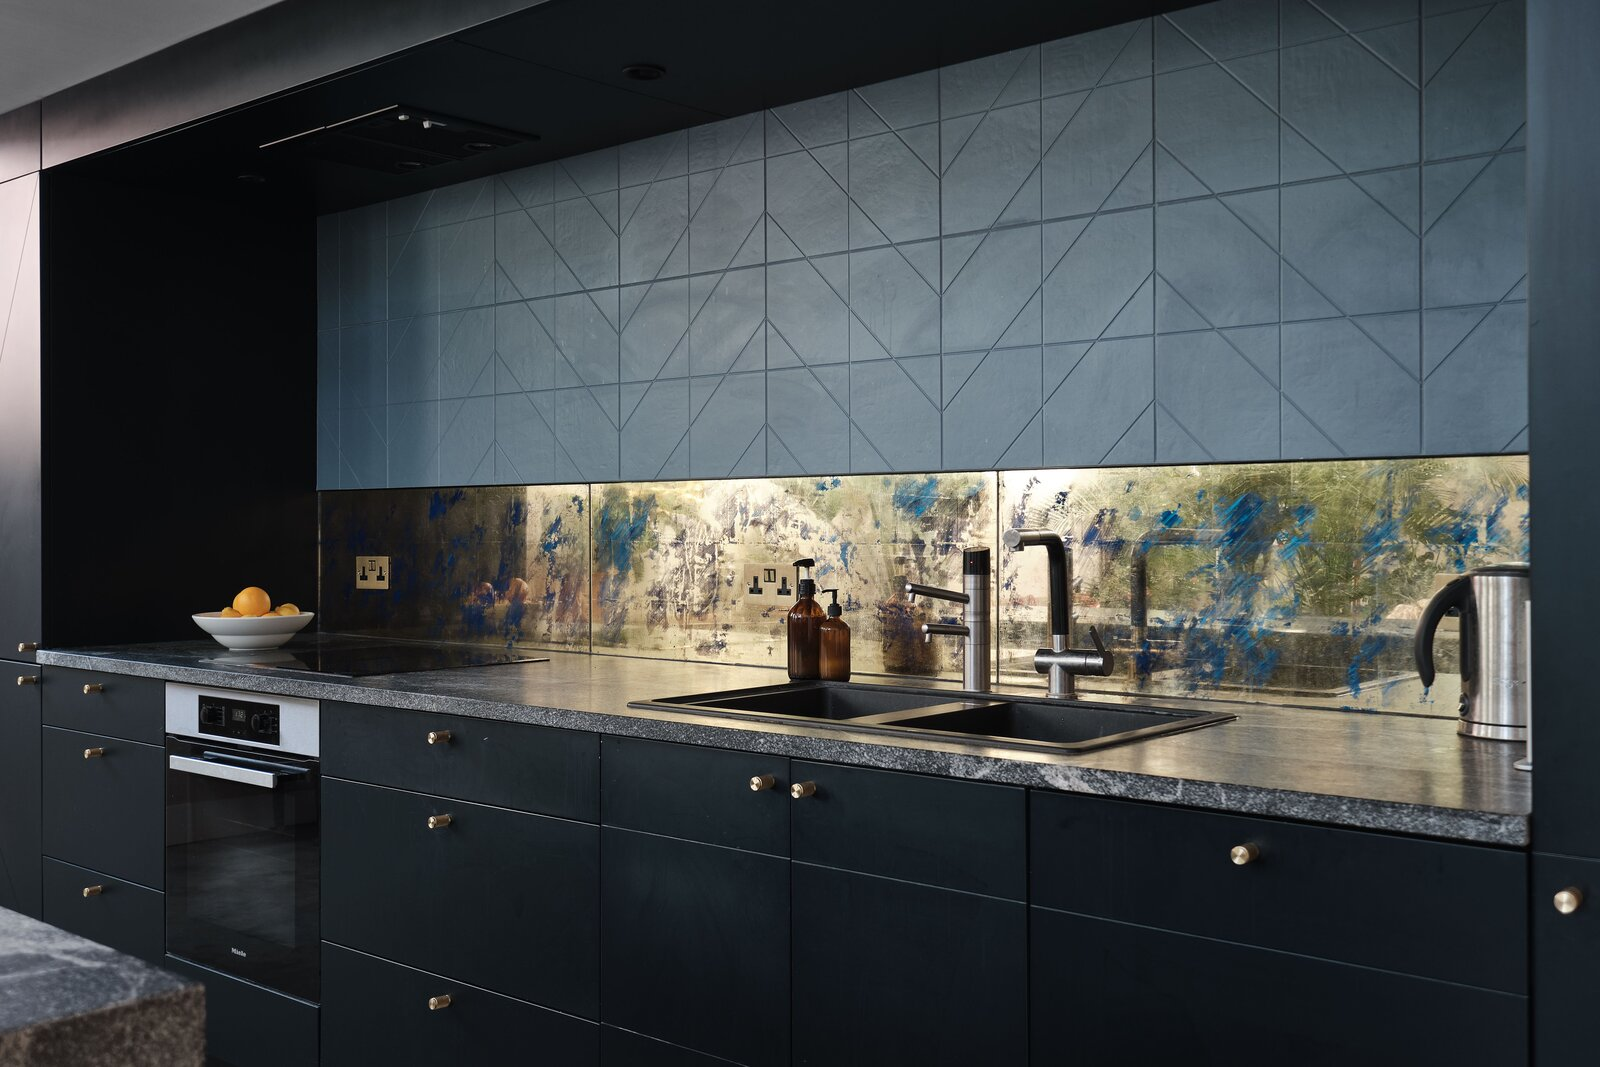 Matte black cabinetry is complemented by the granite clad island and countertops. A gold verre églomisé backsplash was handmade by Martynova.  Photo 6 of 14 in This Former Chapel, Now a Heavenly Artist's Studio and Home, Lists for £1.6M